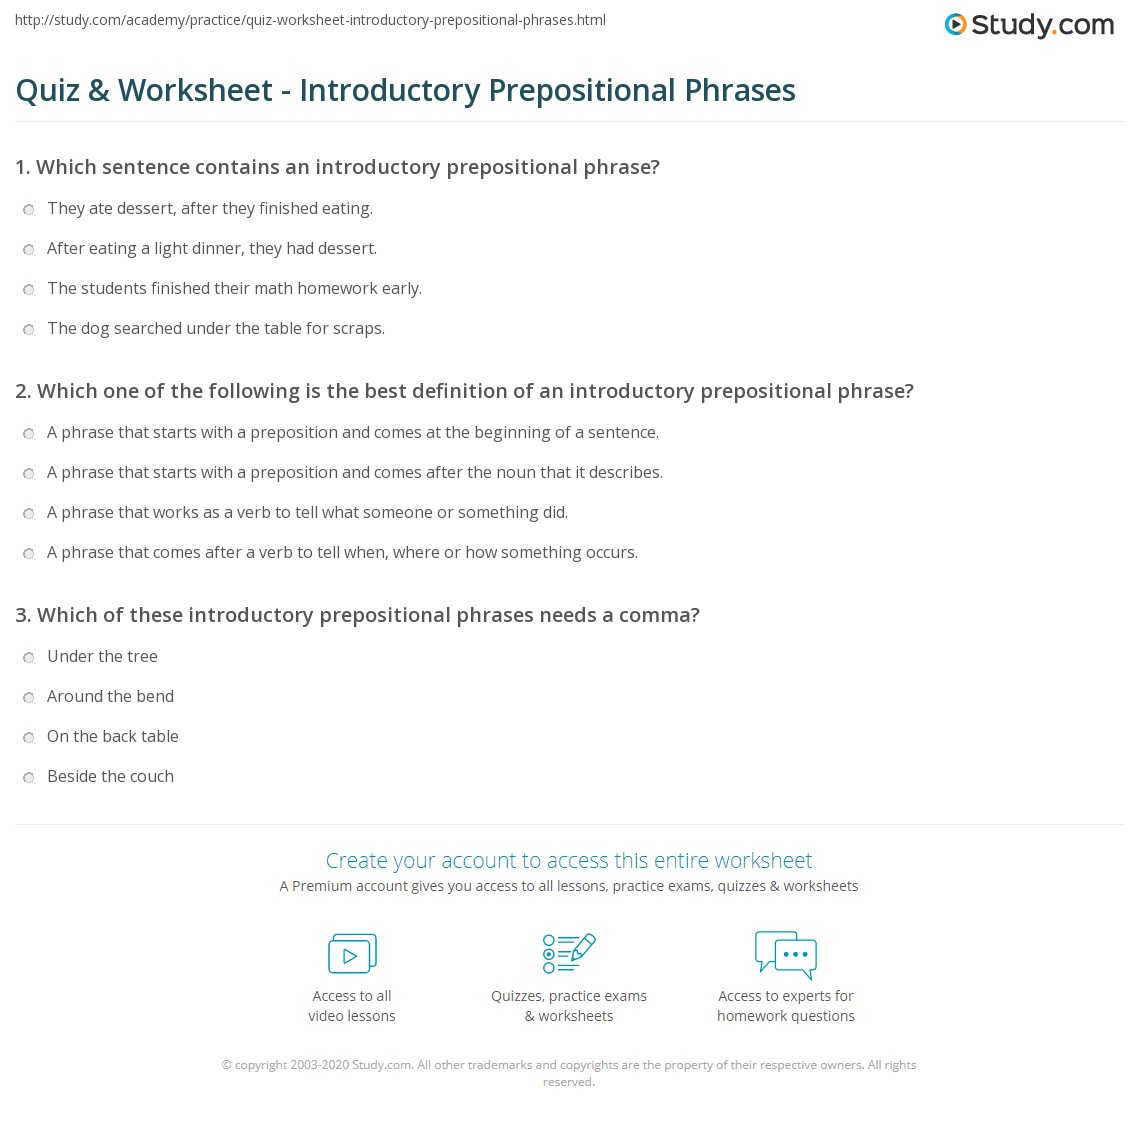 Worksheets Prepositional Phrase Worksheet With Answers quiz worksheet introductory prepositional phrases study com print what is an phrase worksheet